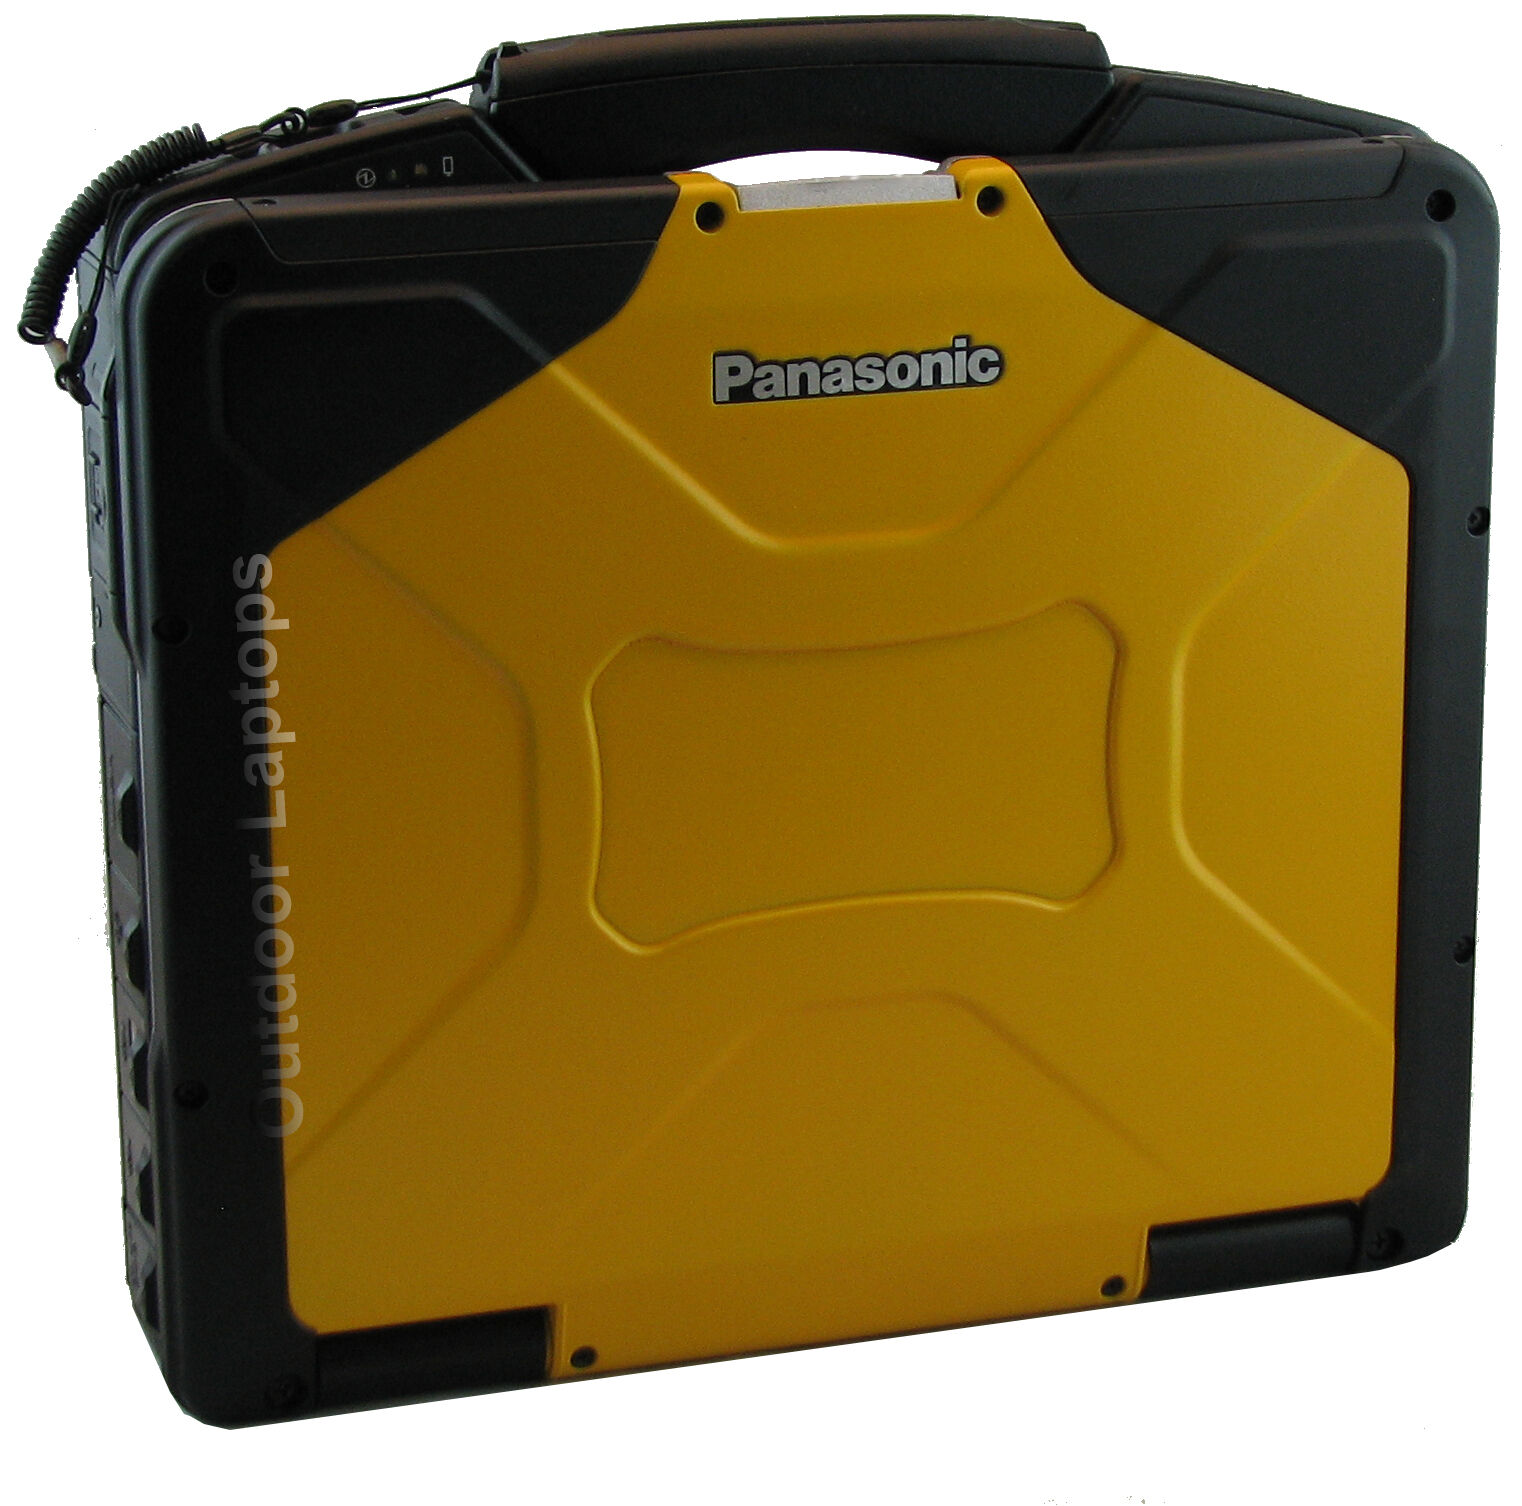 Custom Build Bumblebee Panasonic Toughbook 31 Core i5 8GB Rugged Military Touch